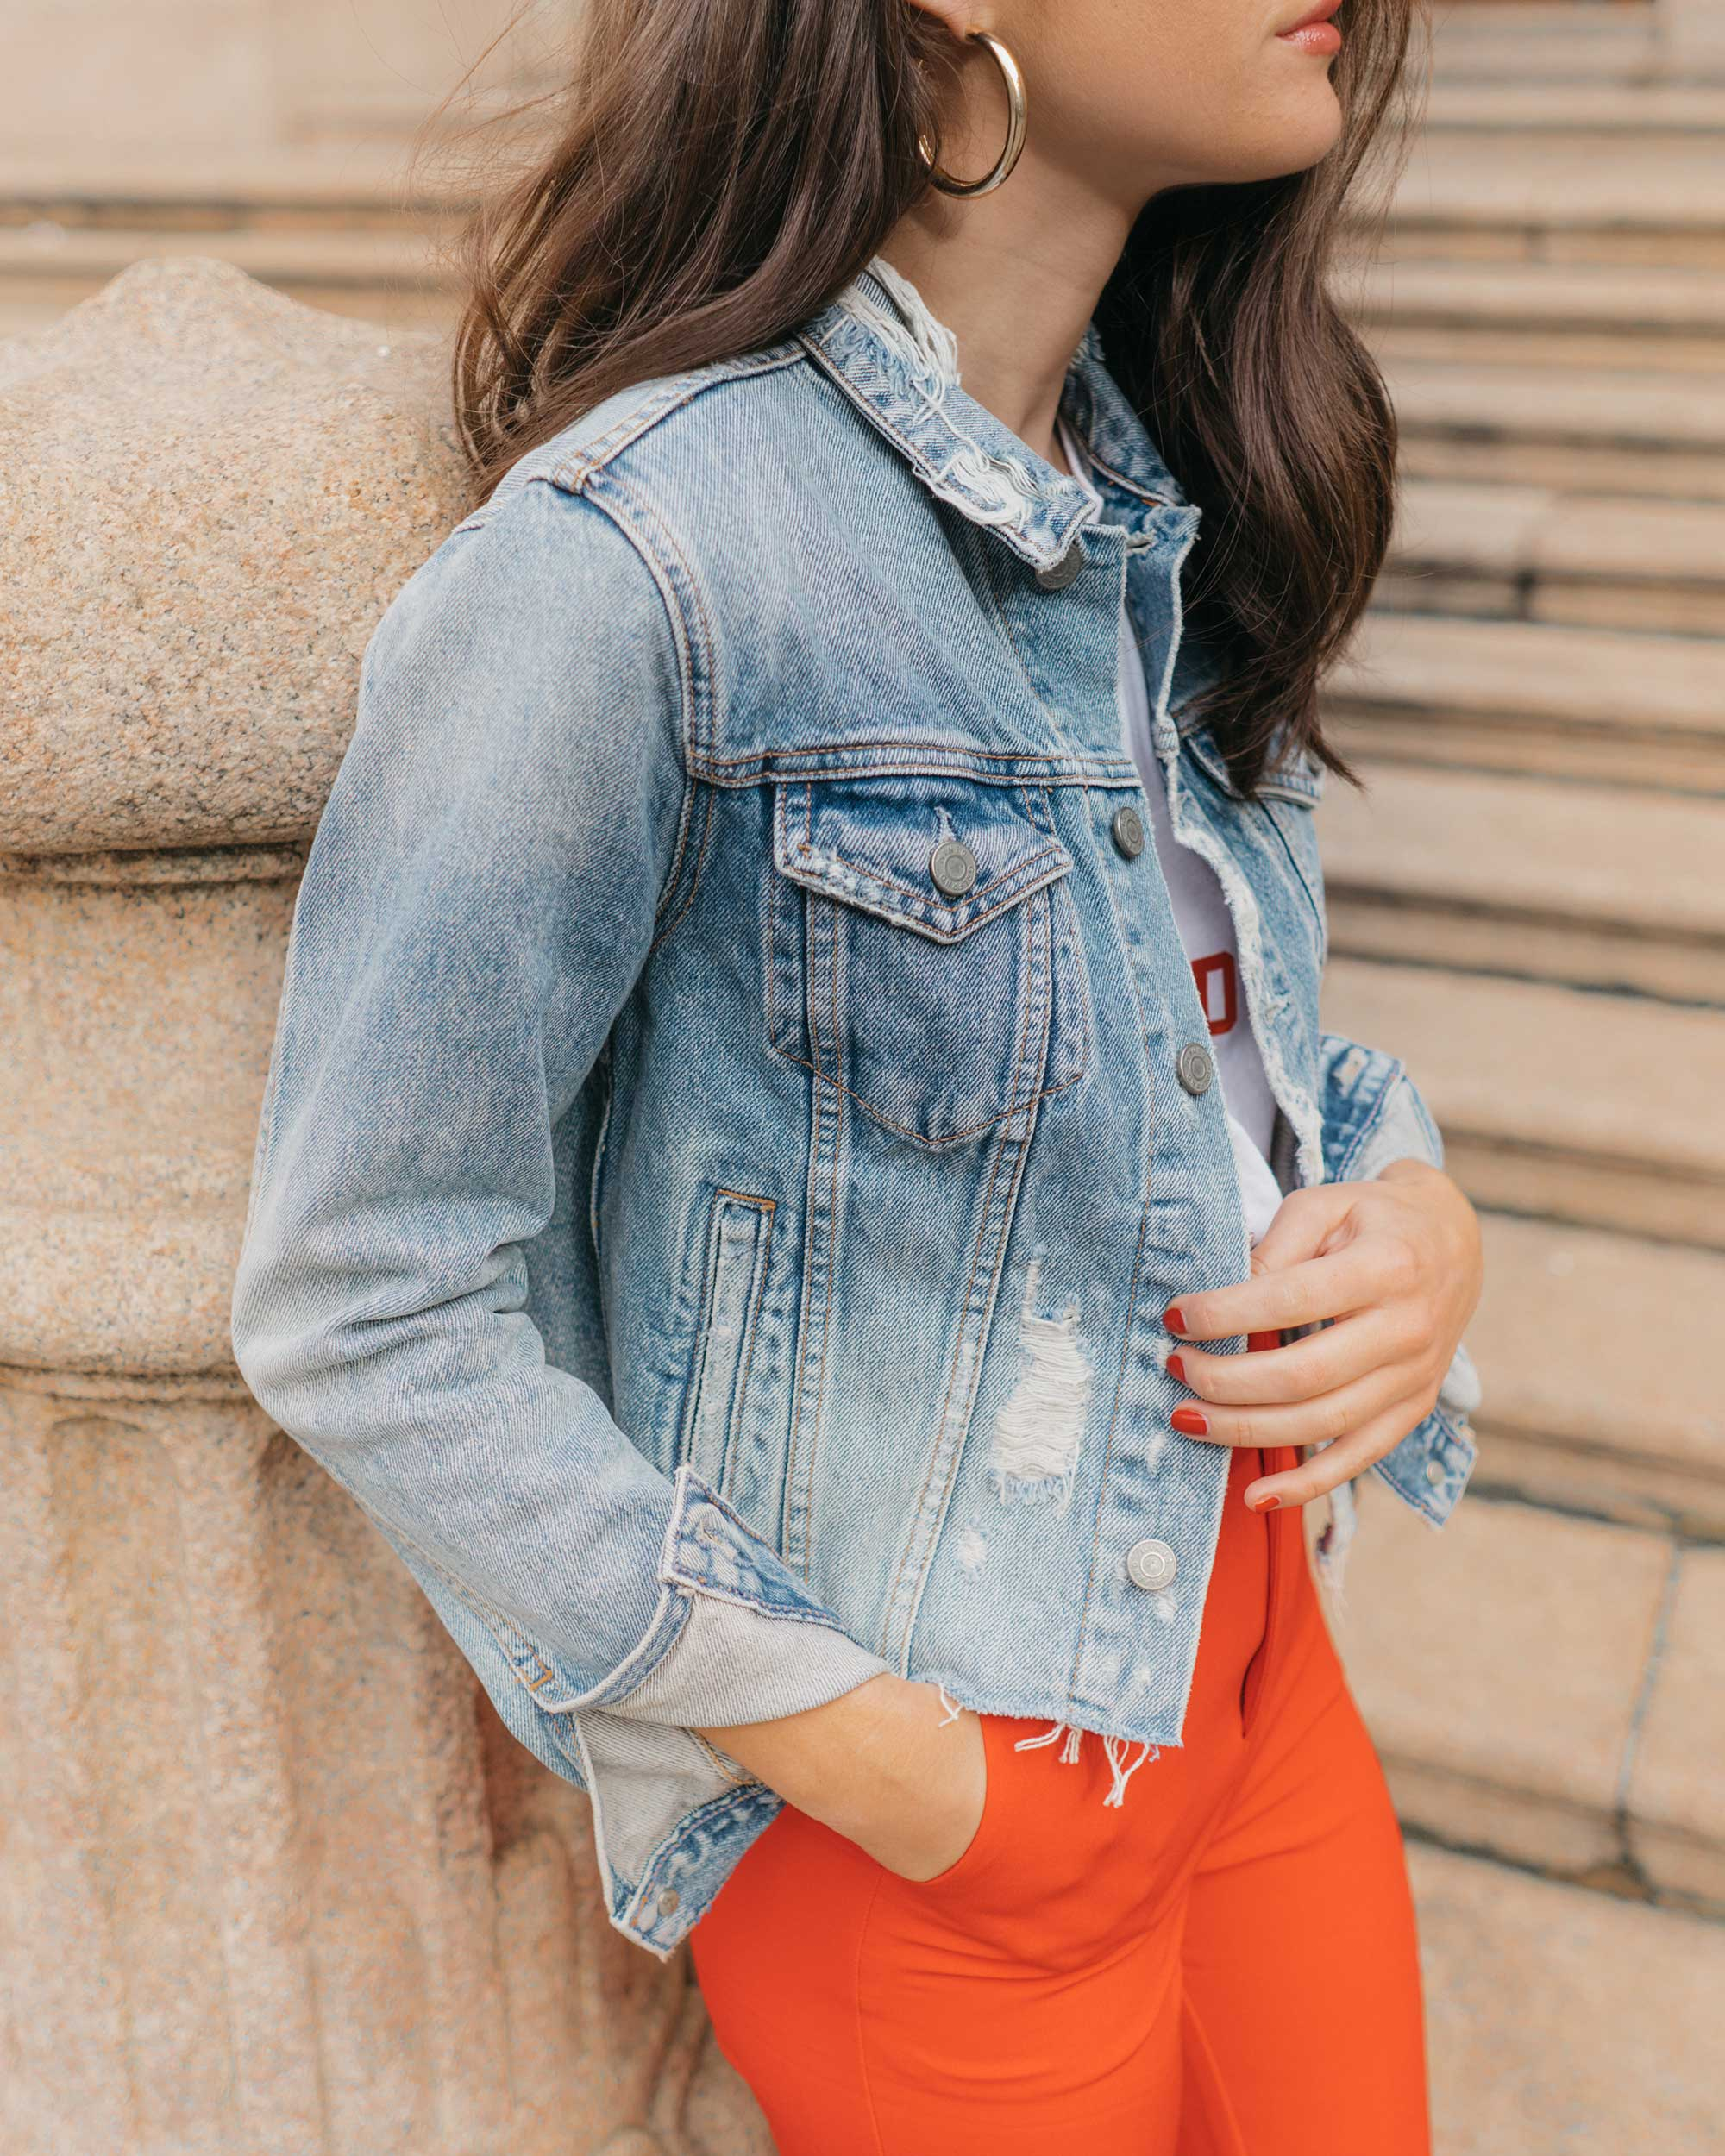 Red-Skinny-Pants,-All-You-Need-Is-Love'-Slogan-T-Shirt,-Cara-Cropped-Denim-Jacket,-Milan-Spring-Outfit-7.jpg